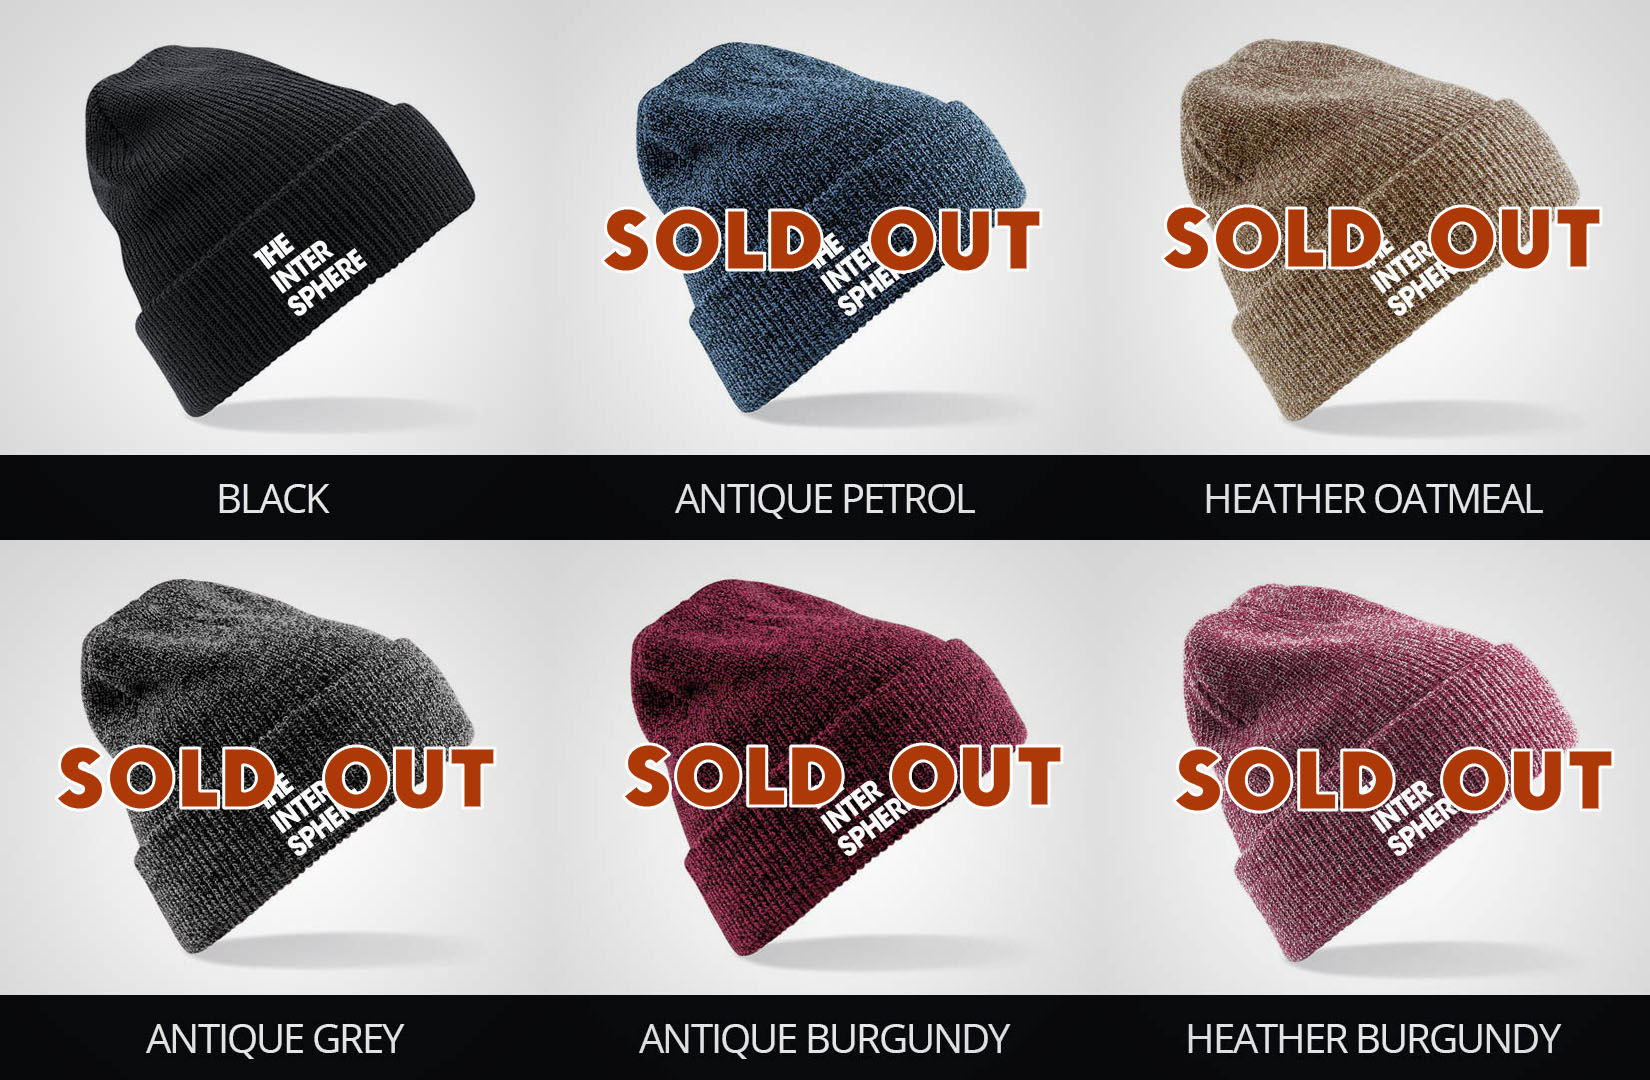 The Intersphere Beanie colors